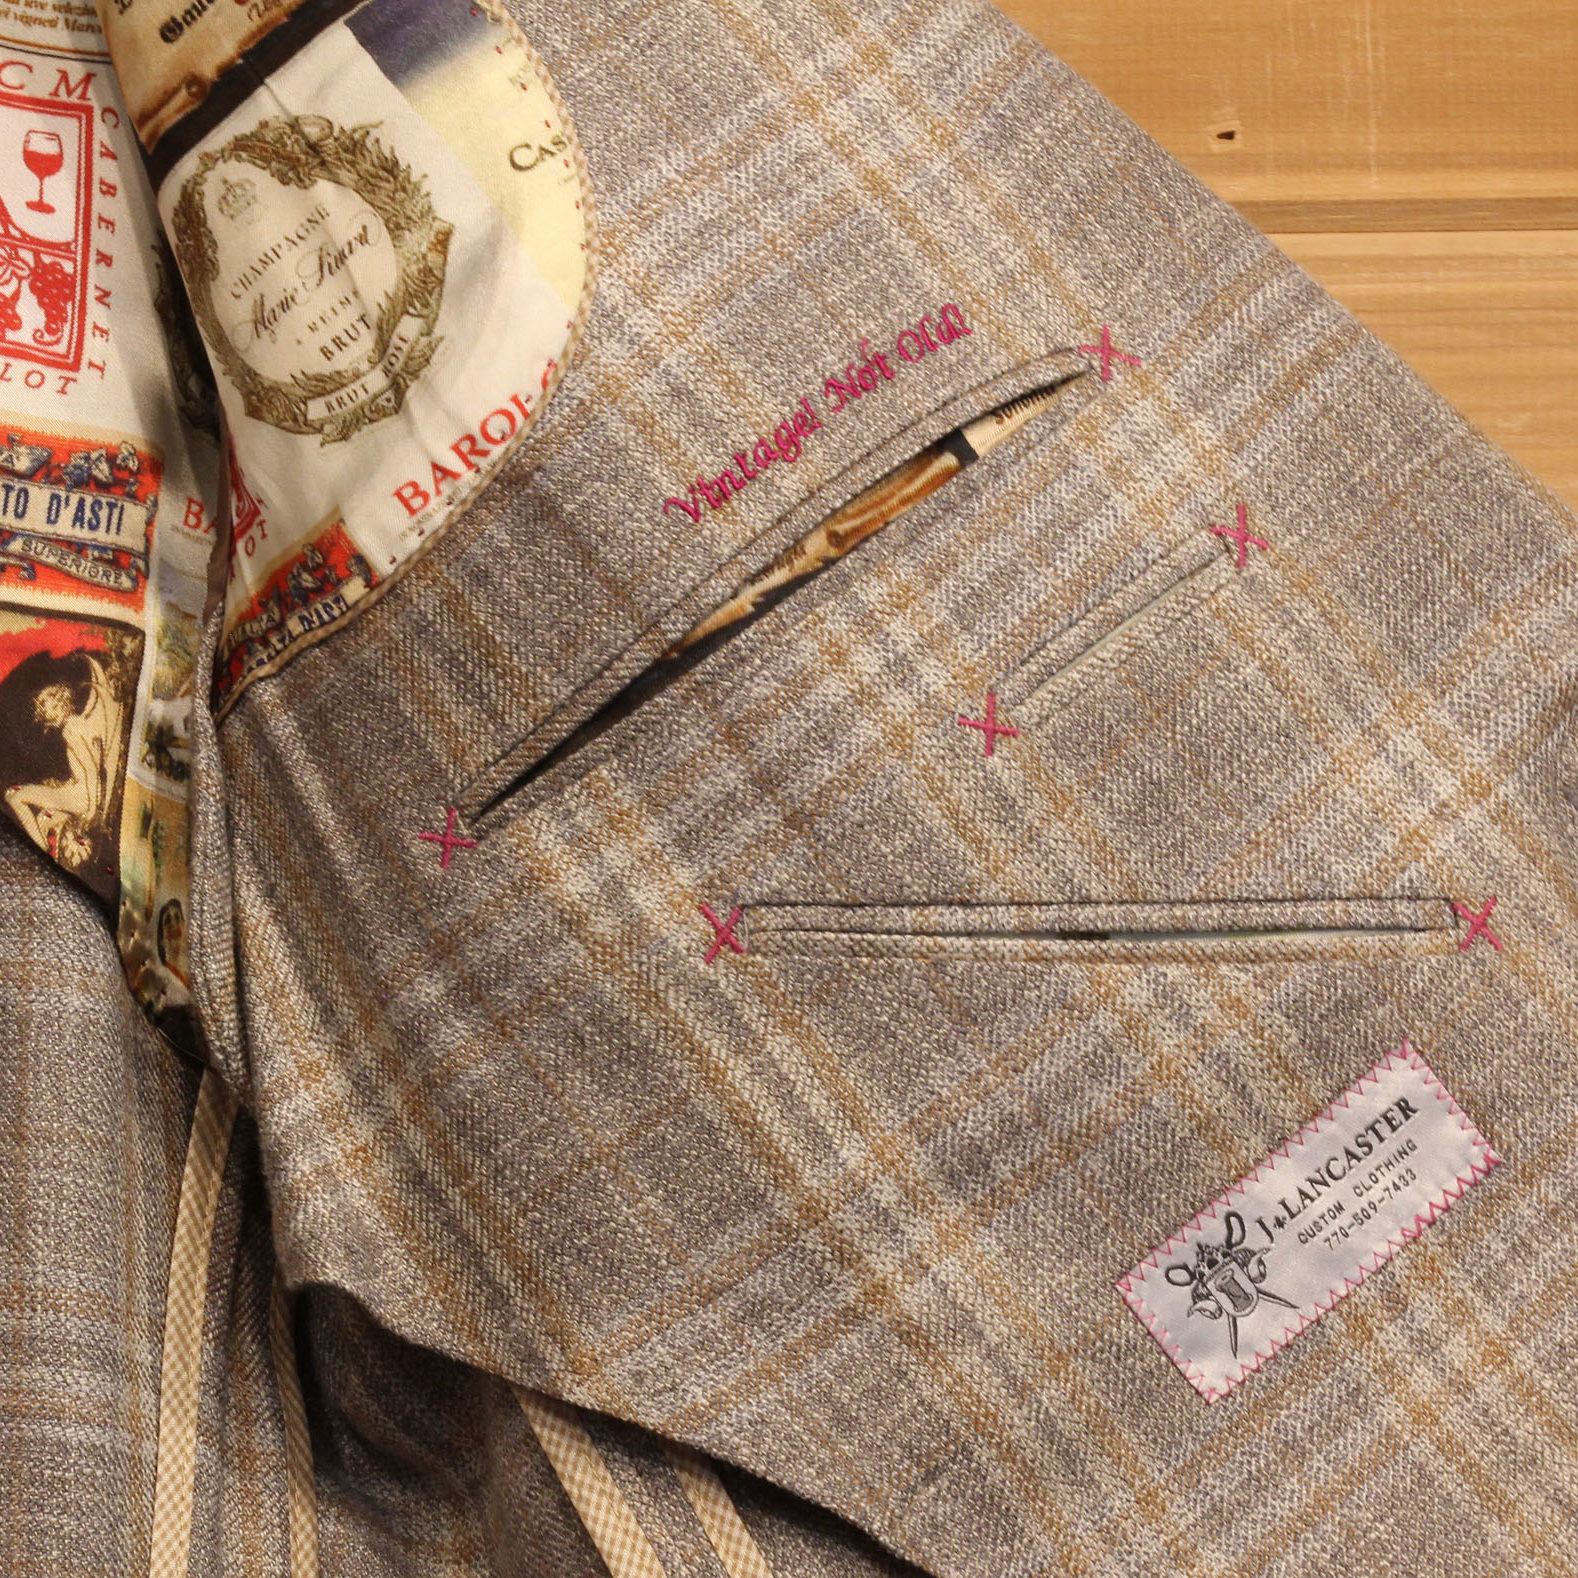 JLC_Inside Jacket detail 2